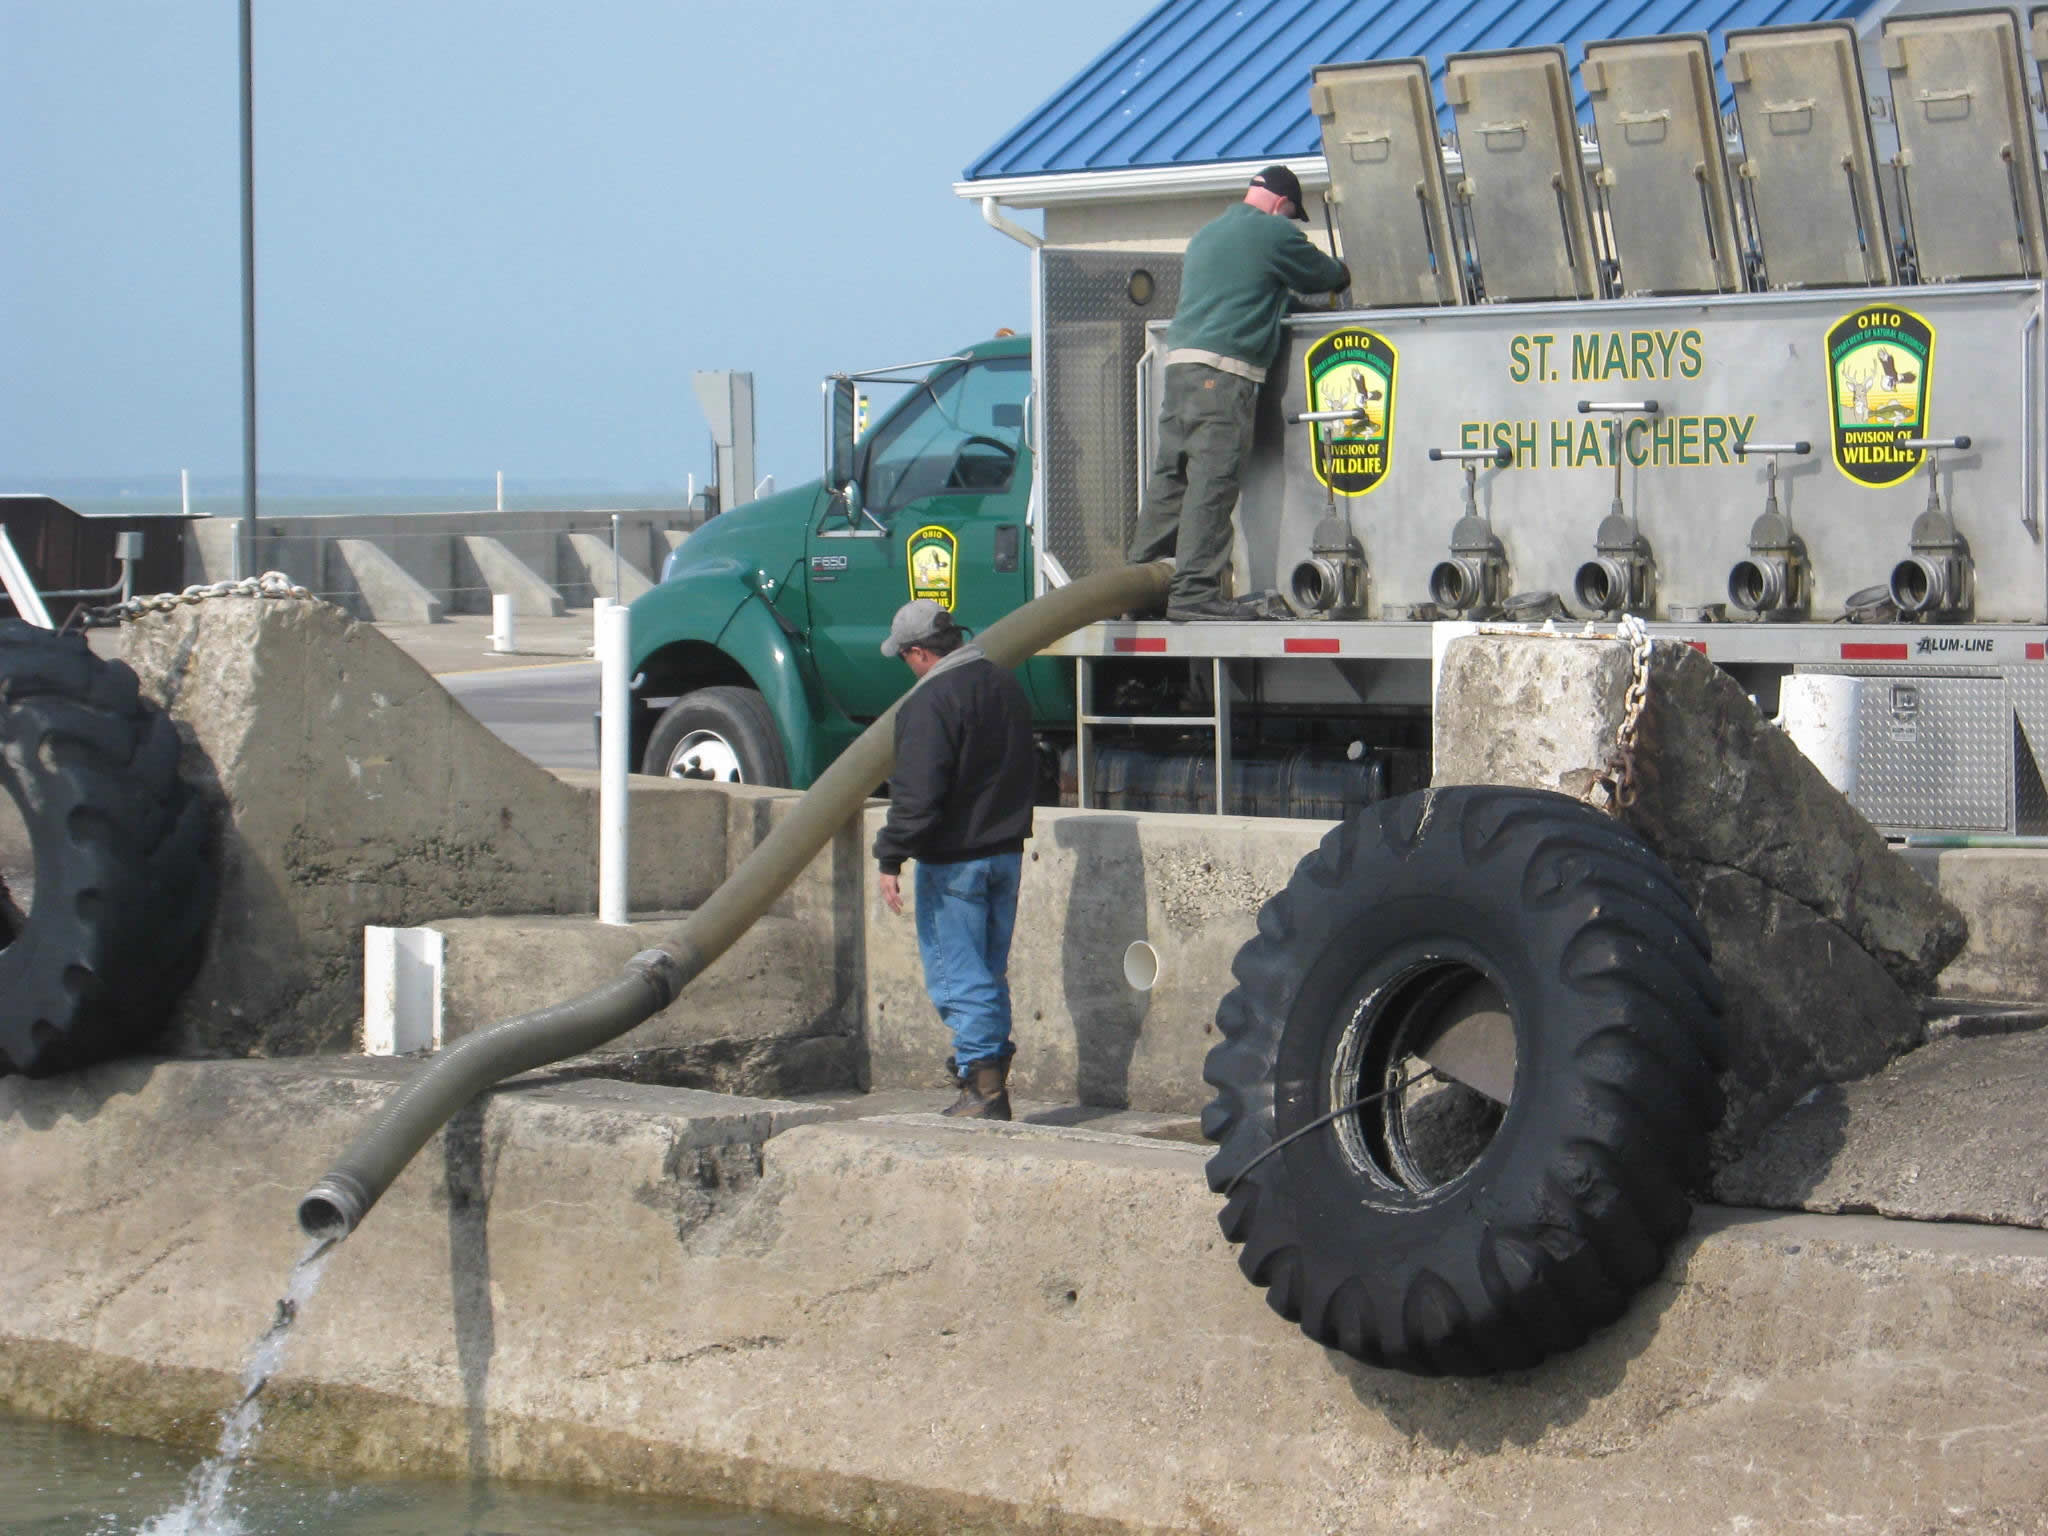 Taking stock in the future of lake trout u s fish and for Fish hatchery ohio